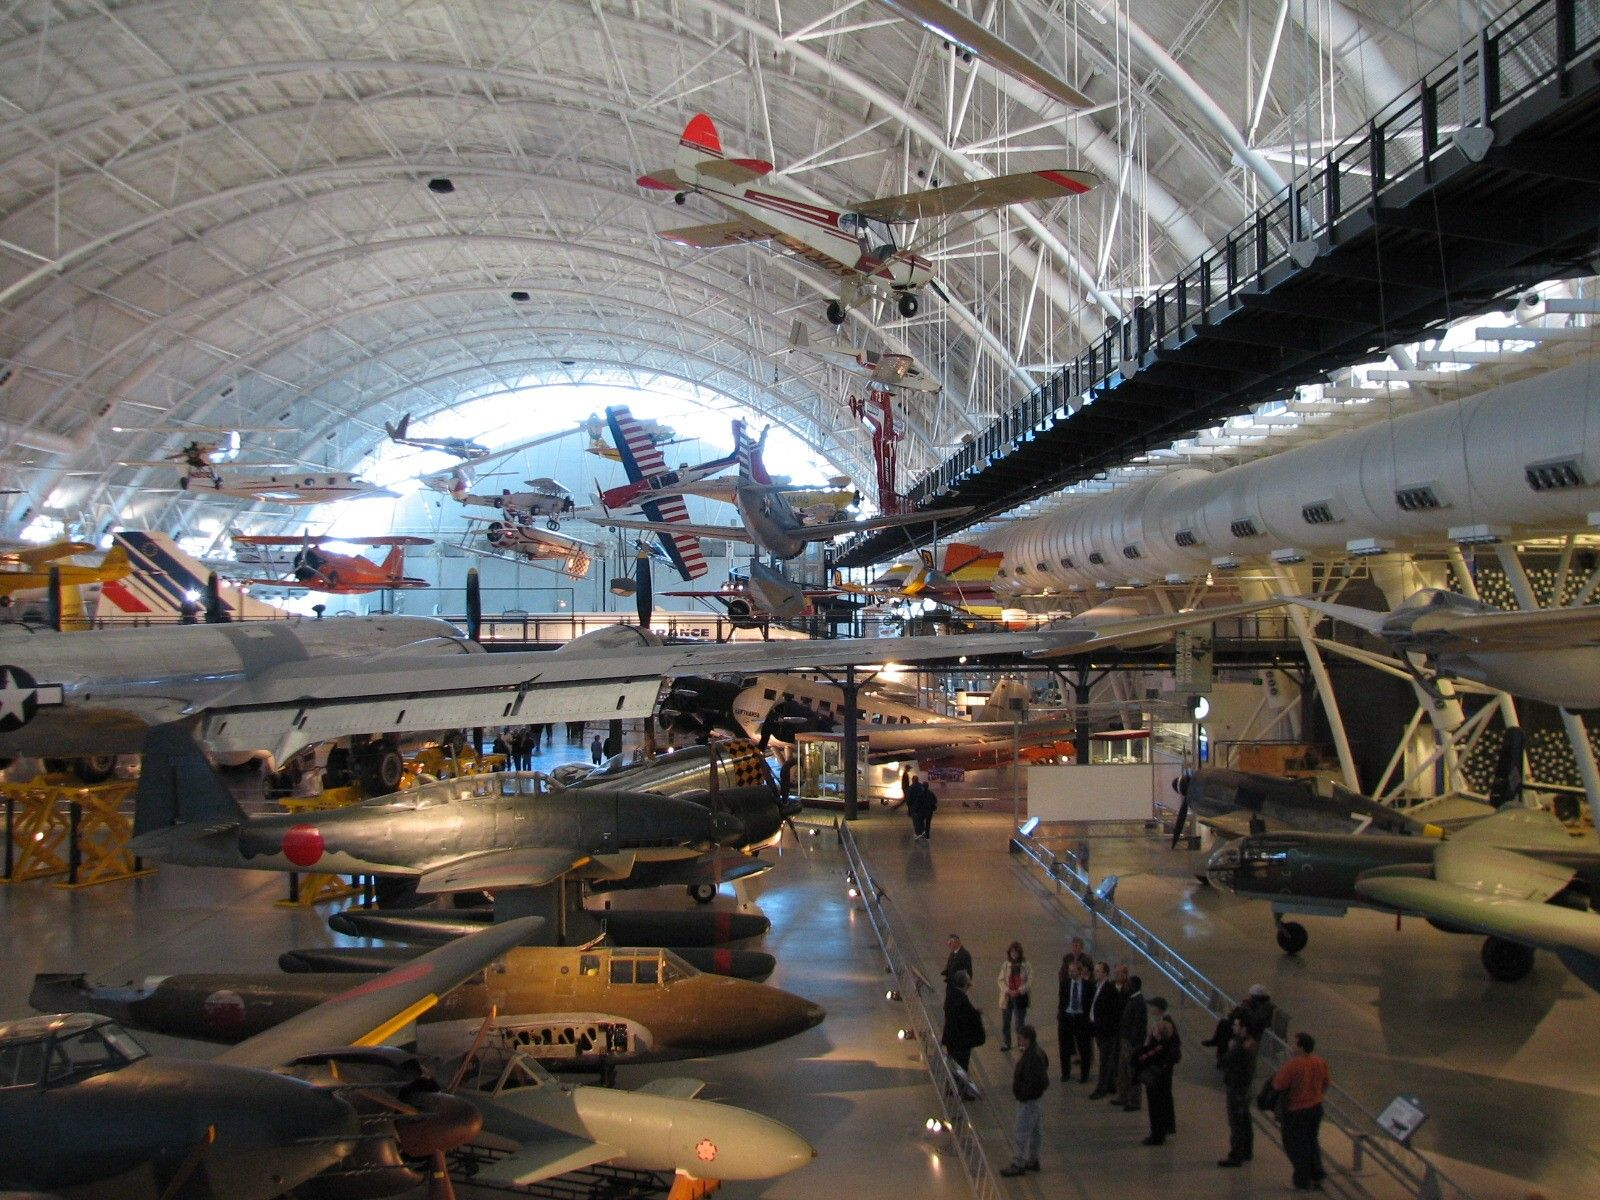 Visit One Museum, Two Locations. Visit us in Washington, DC and Chantilly, VA to explore hundreds of the world's most significant objects in aviation and space history.